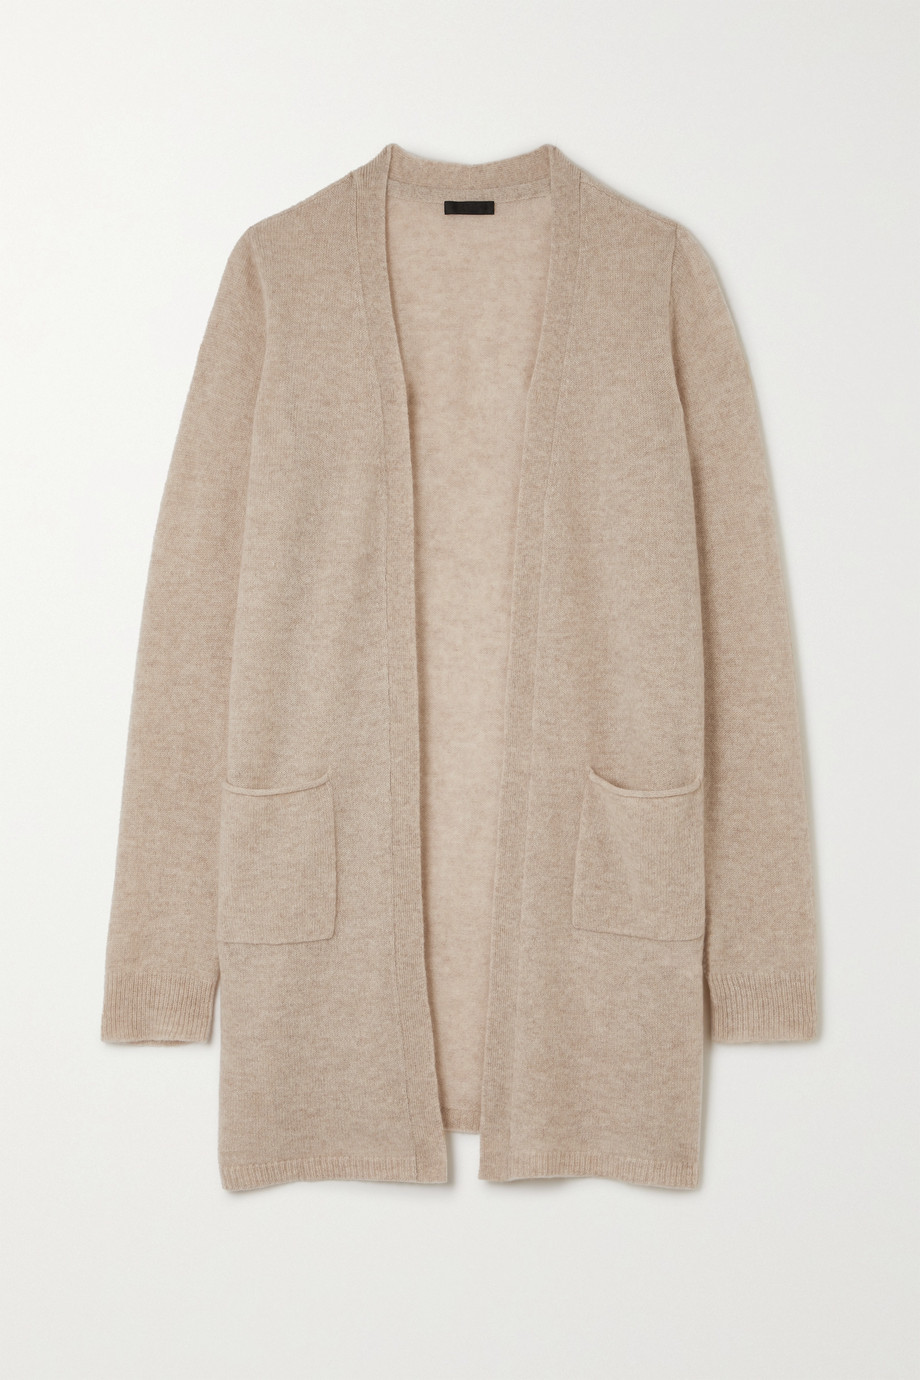 ATM ANTHONY THOMAS MELILLO Cashmere cardigan